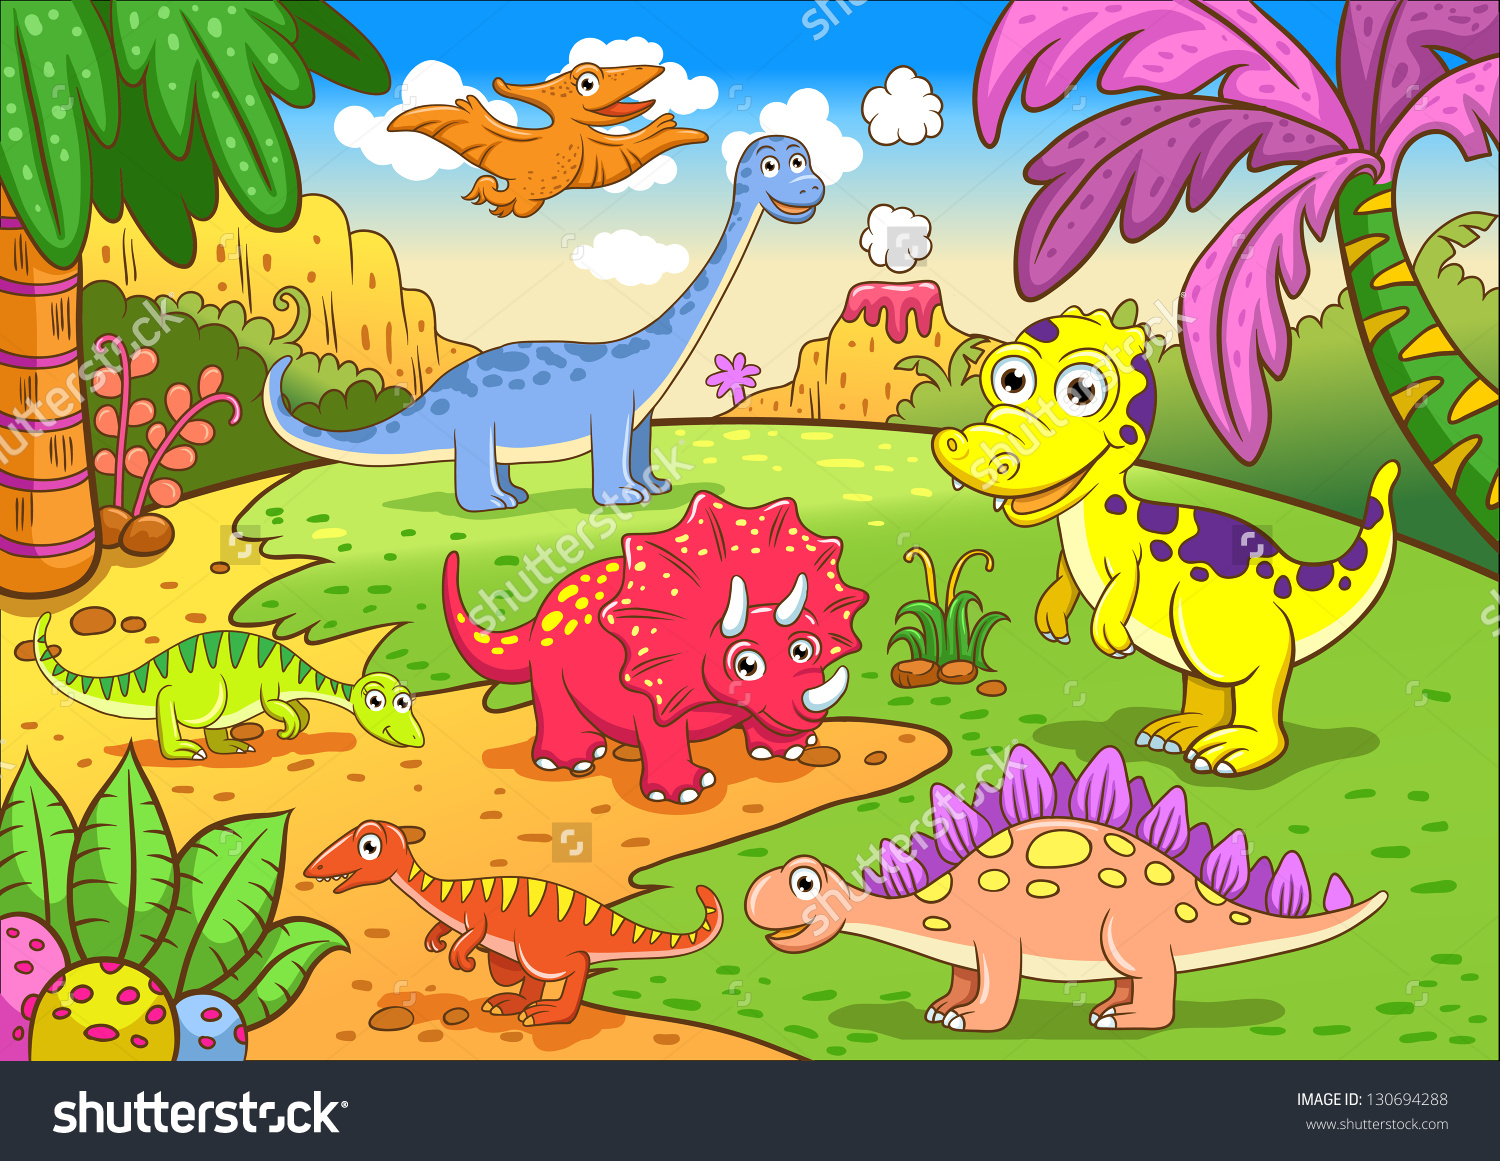 Cute Dinosaur Backgrounds HD Quality Desktop Backgrounds 1500x1161